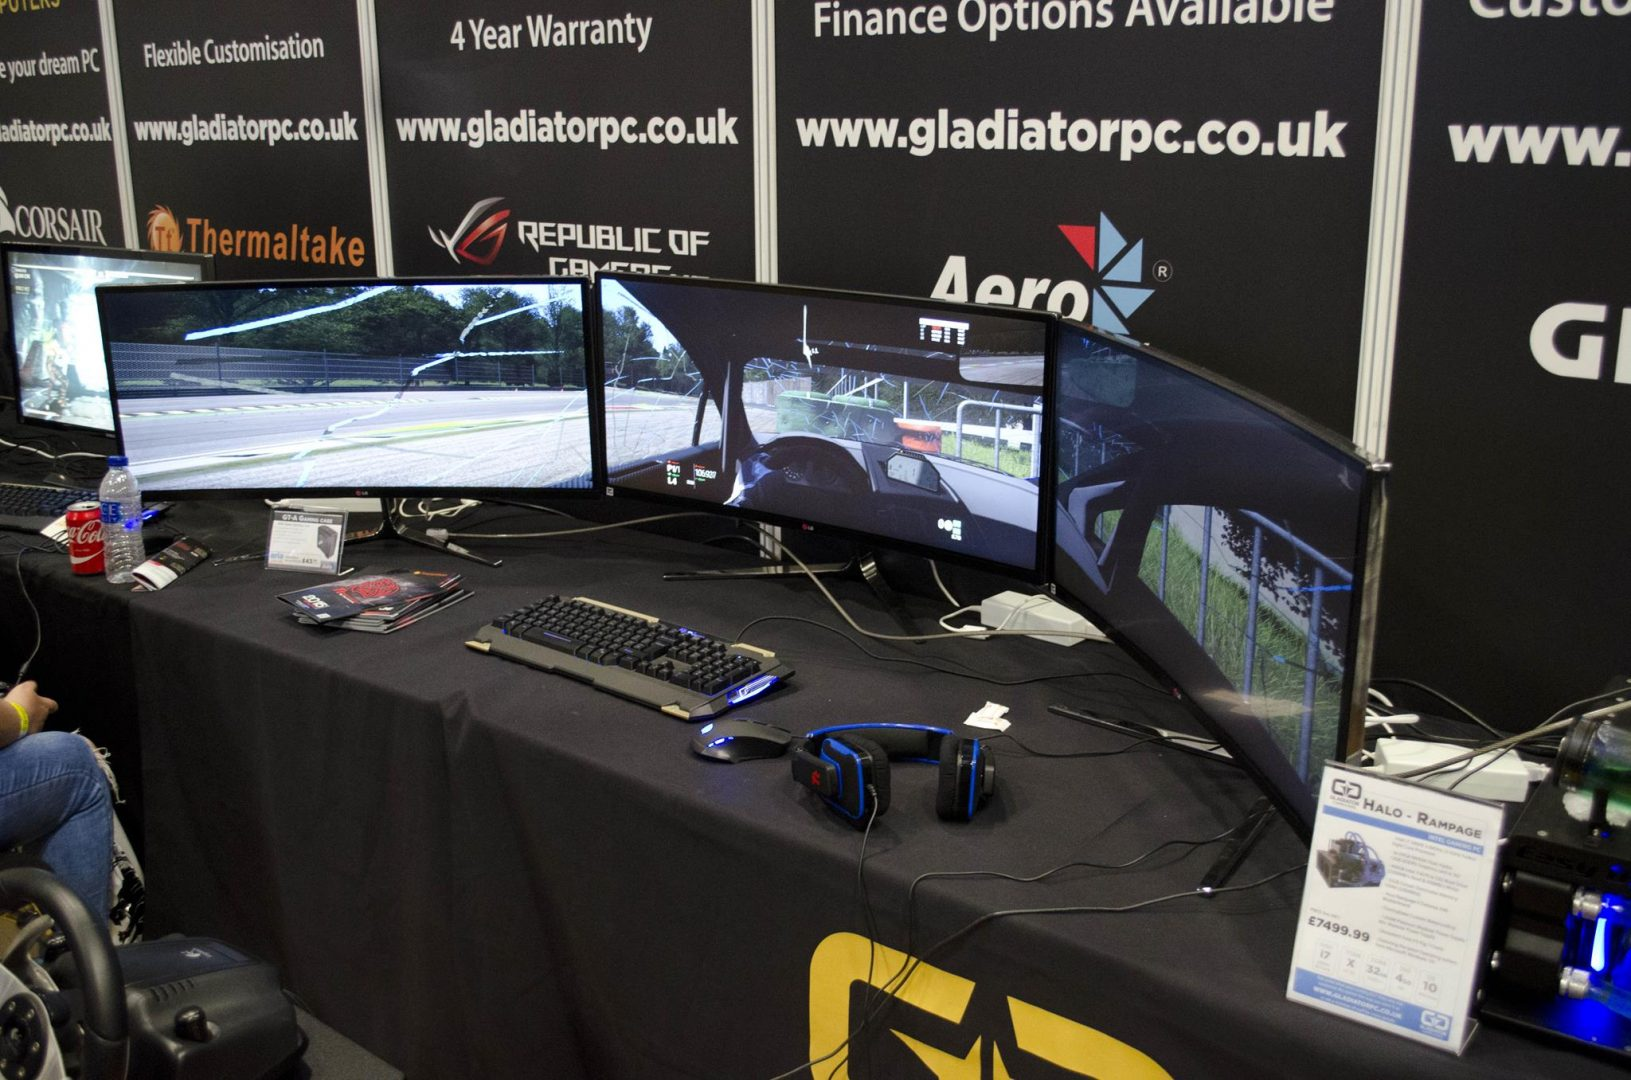 Aria and Gladiator PC at Multiplay Insomnia Gaming Festival I55_5